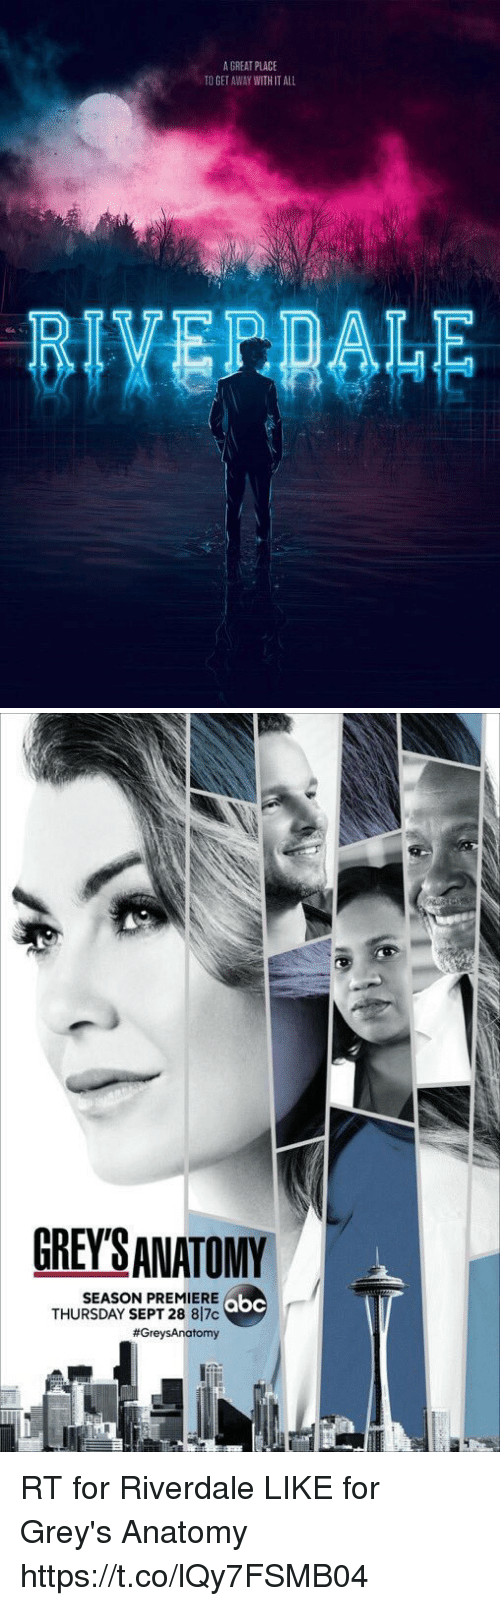 Abc, Memes, and Grey's Anatomy: A GREAT PLACE  TO GET AWAY WITH IT ALL   GREY'SANATOMY  SEASON PREMIERE  THURSDAY SEPT 28 87c  #GreysAnatomy  abc RT for Riverdale LIKE for Grey's Anatomy https://t.co/lQy7FSMB04